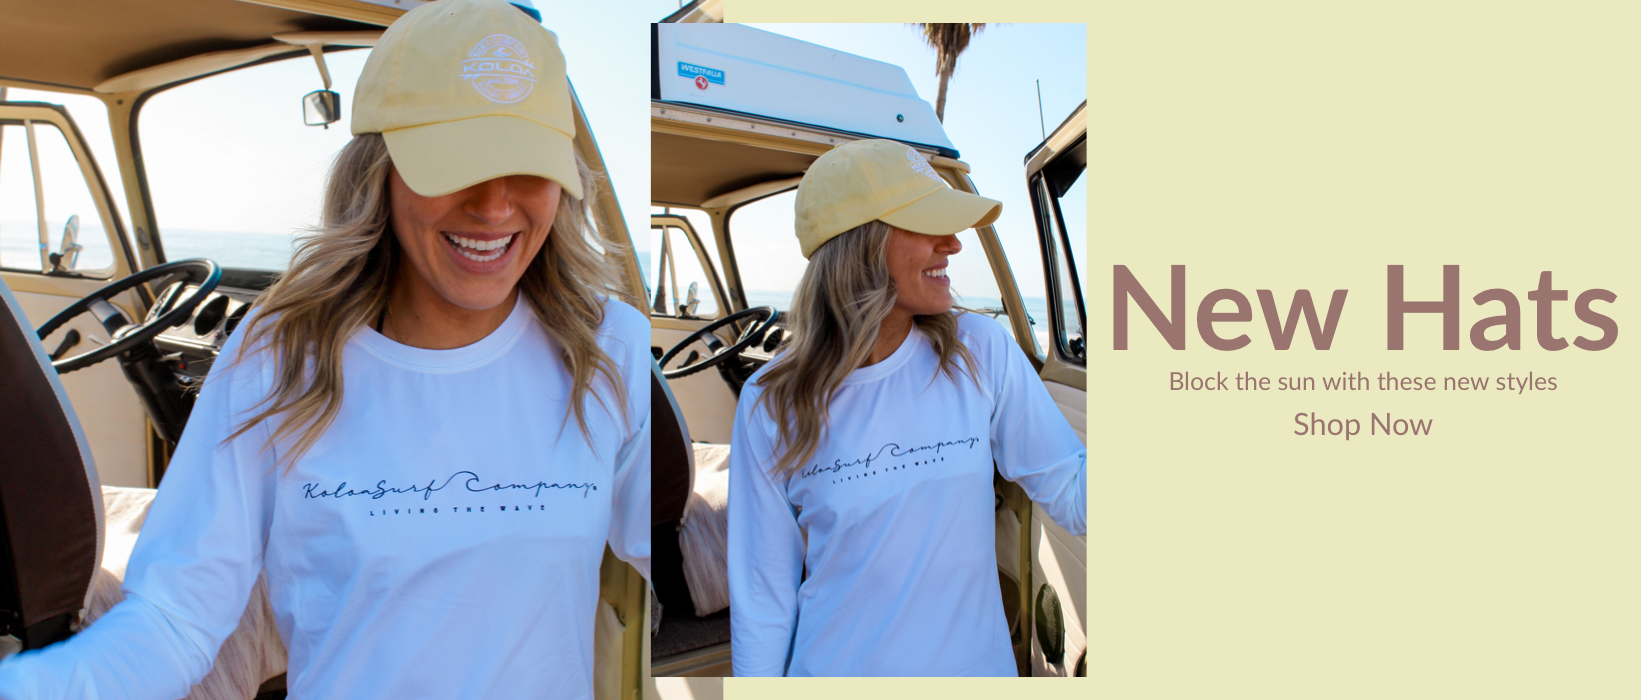 New Hats... Block the sun with these new hat styles... shop now